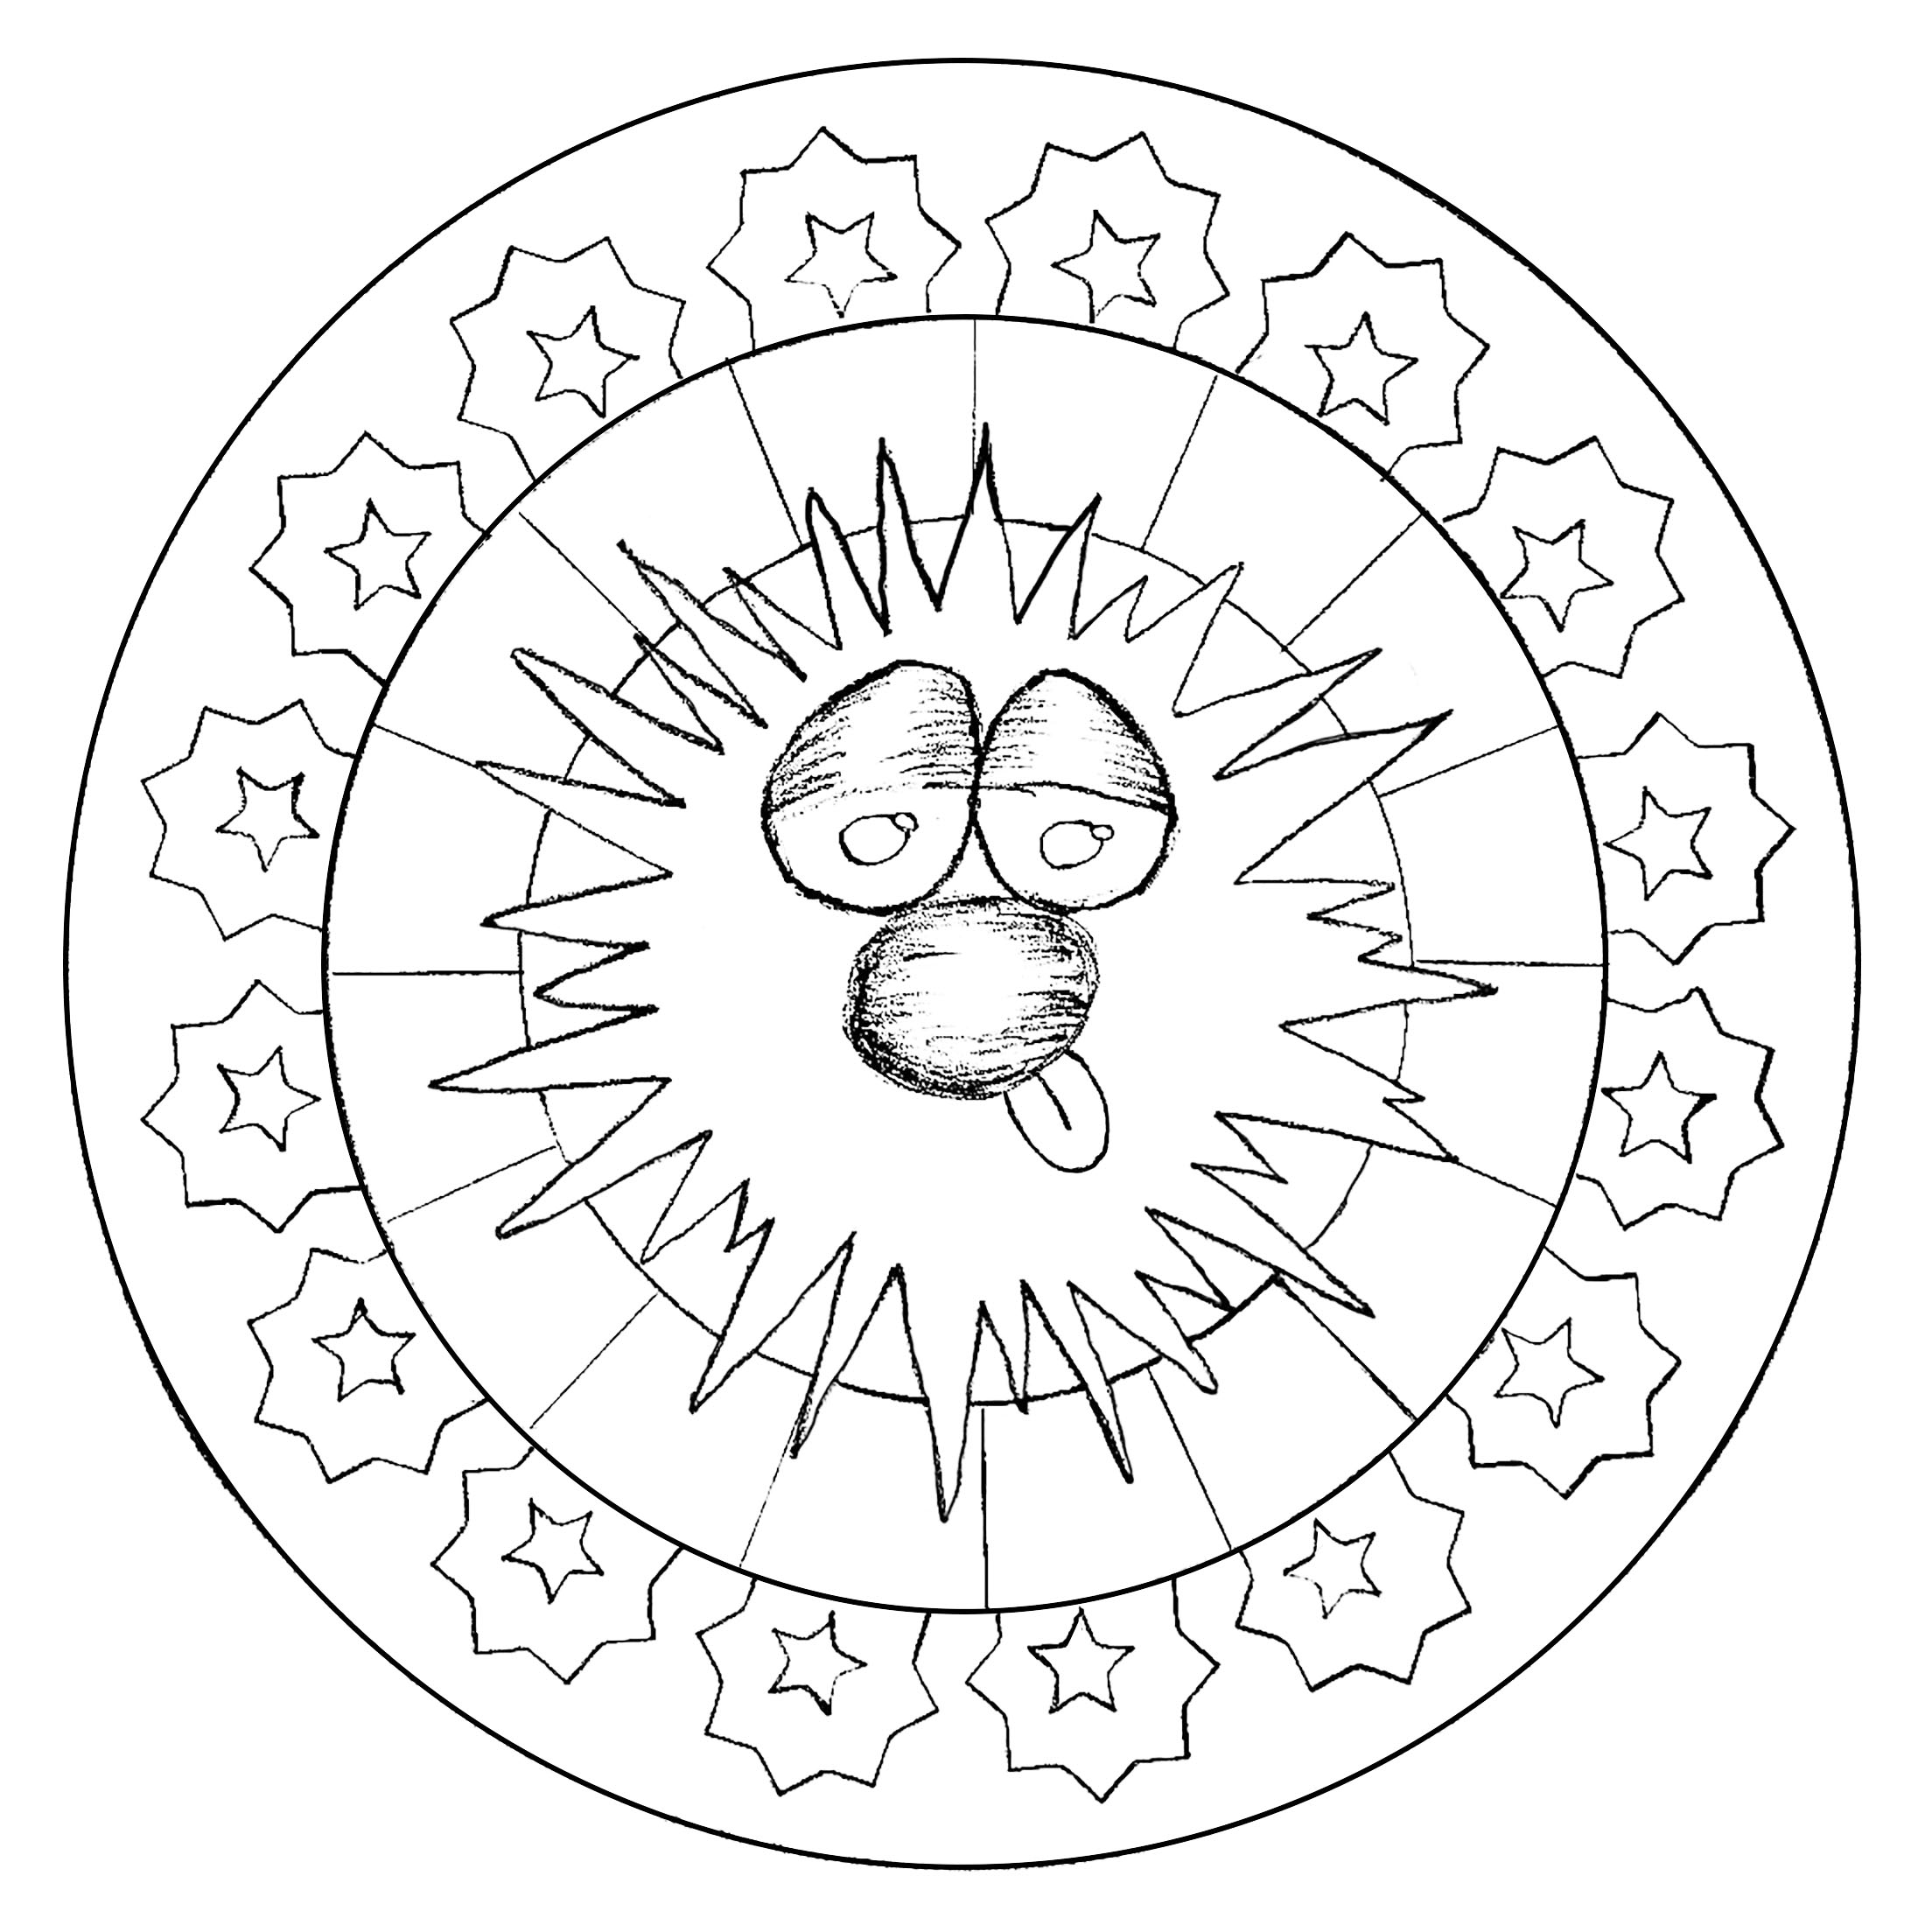 Funny head mandala - M&alas Adult Coloring Pages